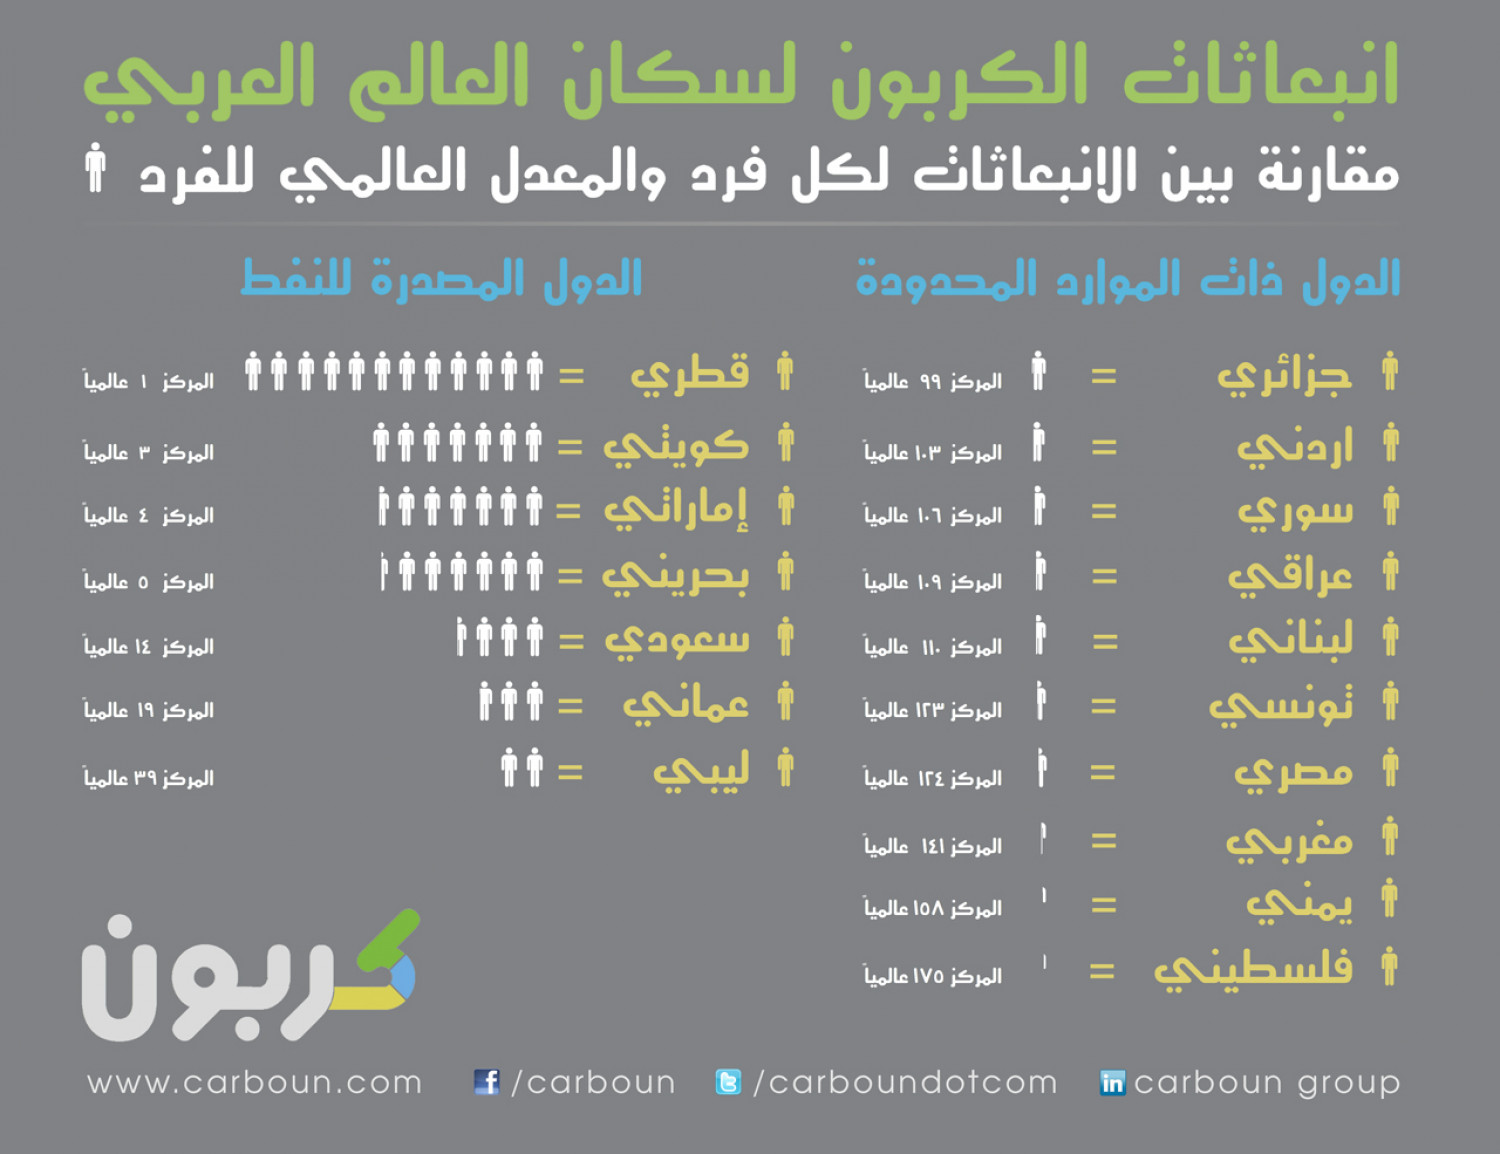 Carbon Emissions in the Middle East  Infographic